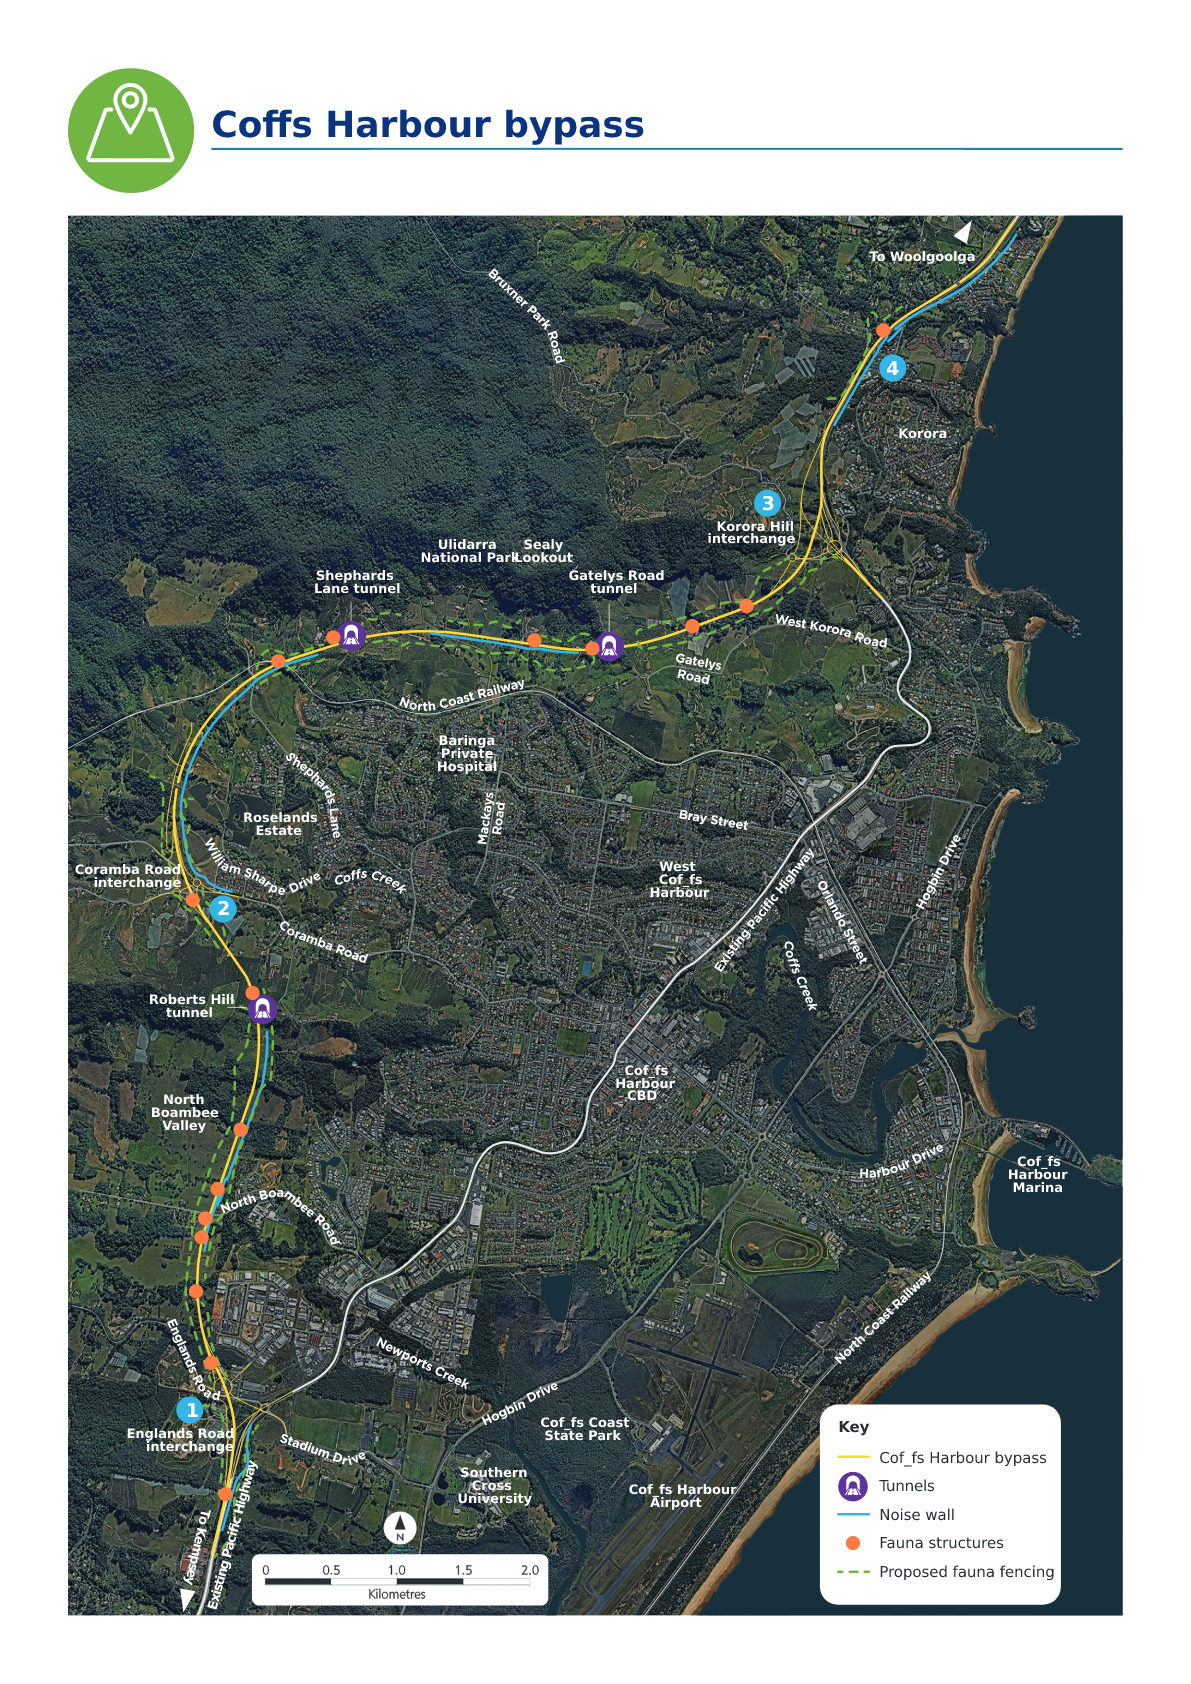 RMS9226_CoffsHarbour_route map December 2020_0-pdf